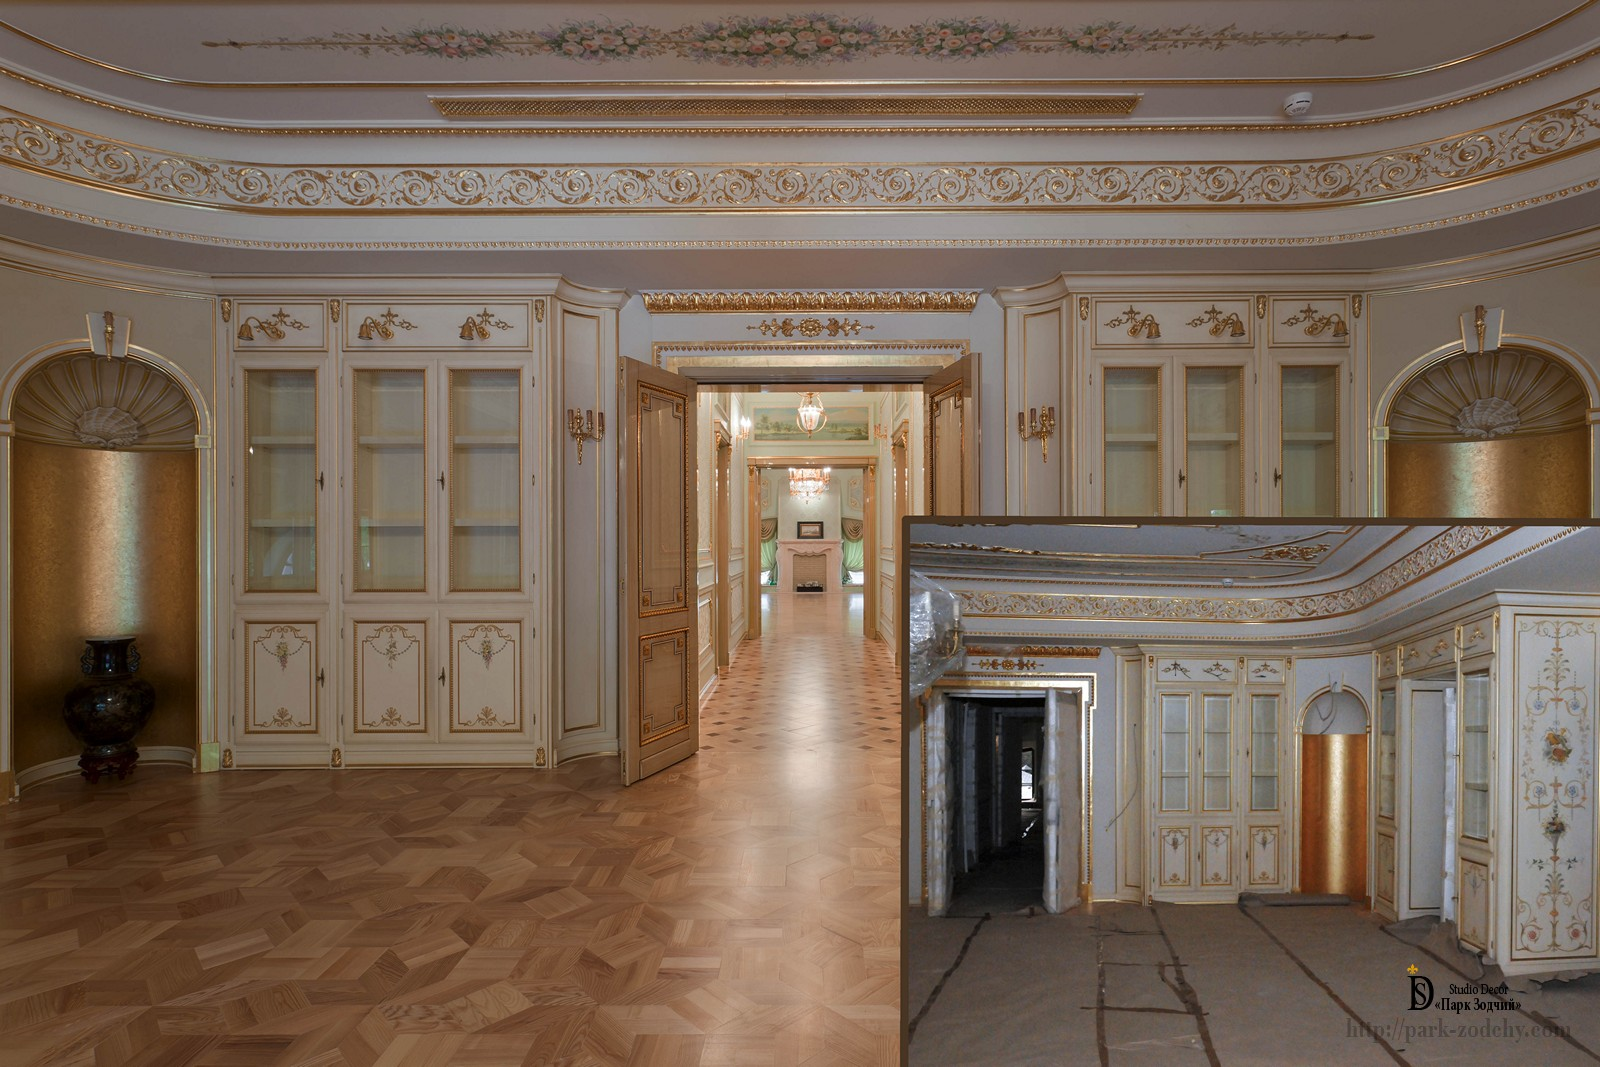 The decoration of the hall parquet